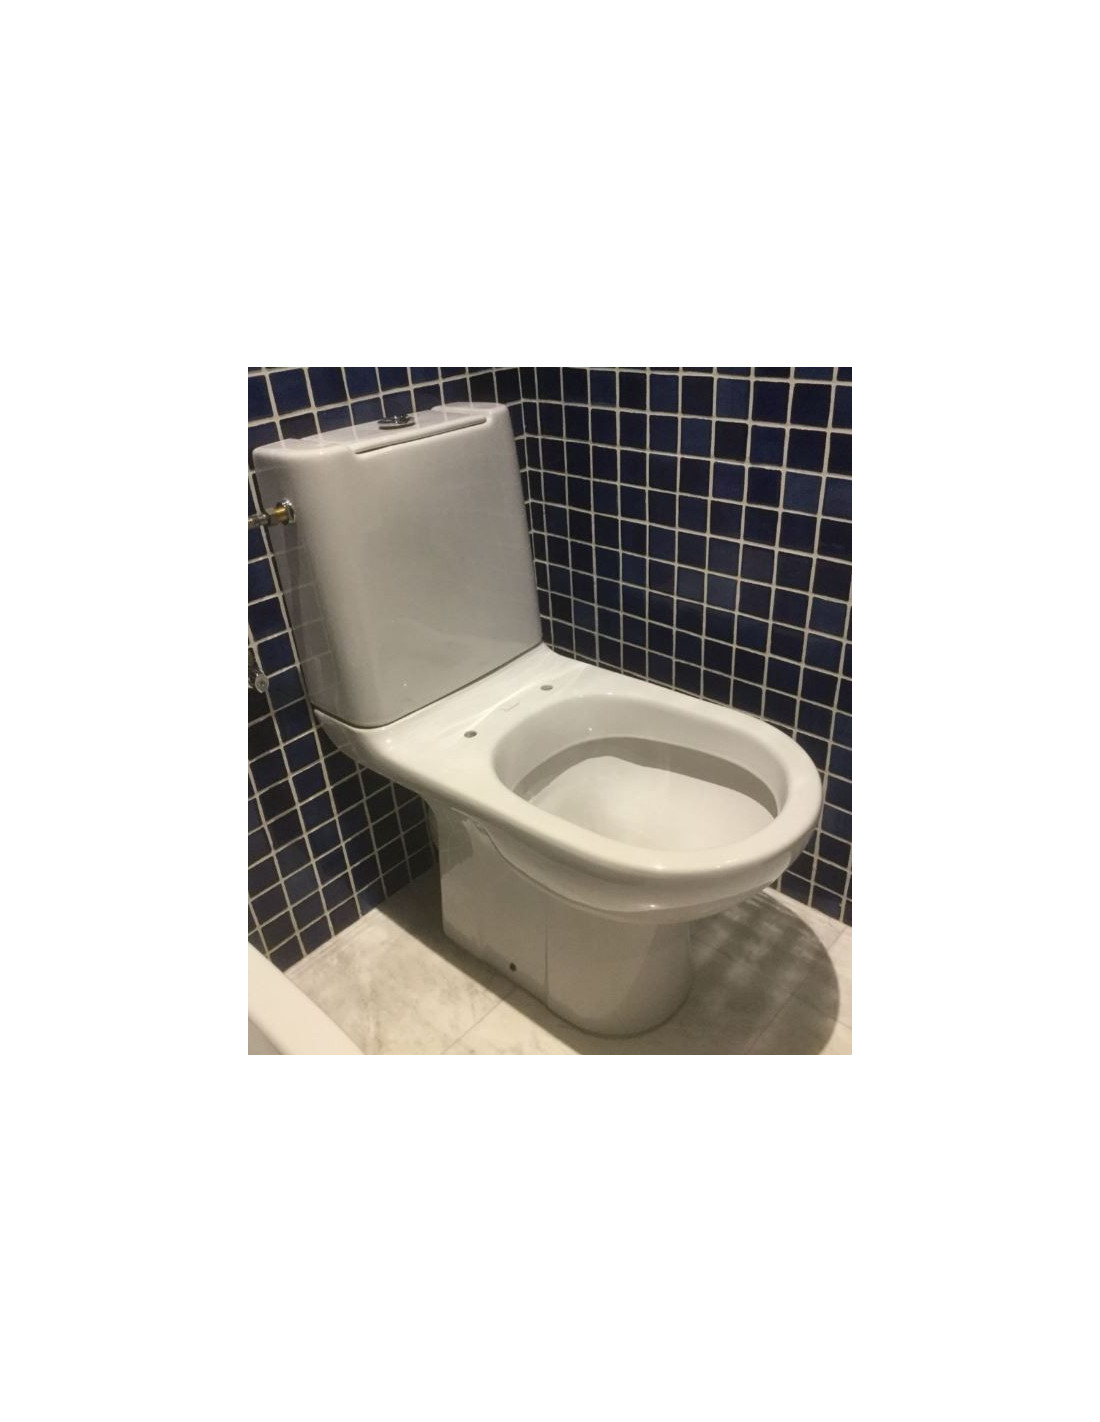 abattant du wc ideal standard madison adaptable in resiwood fr